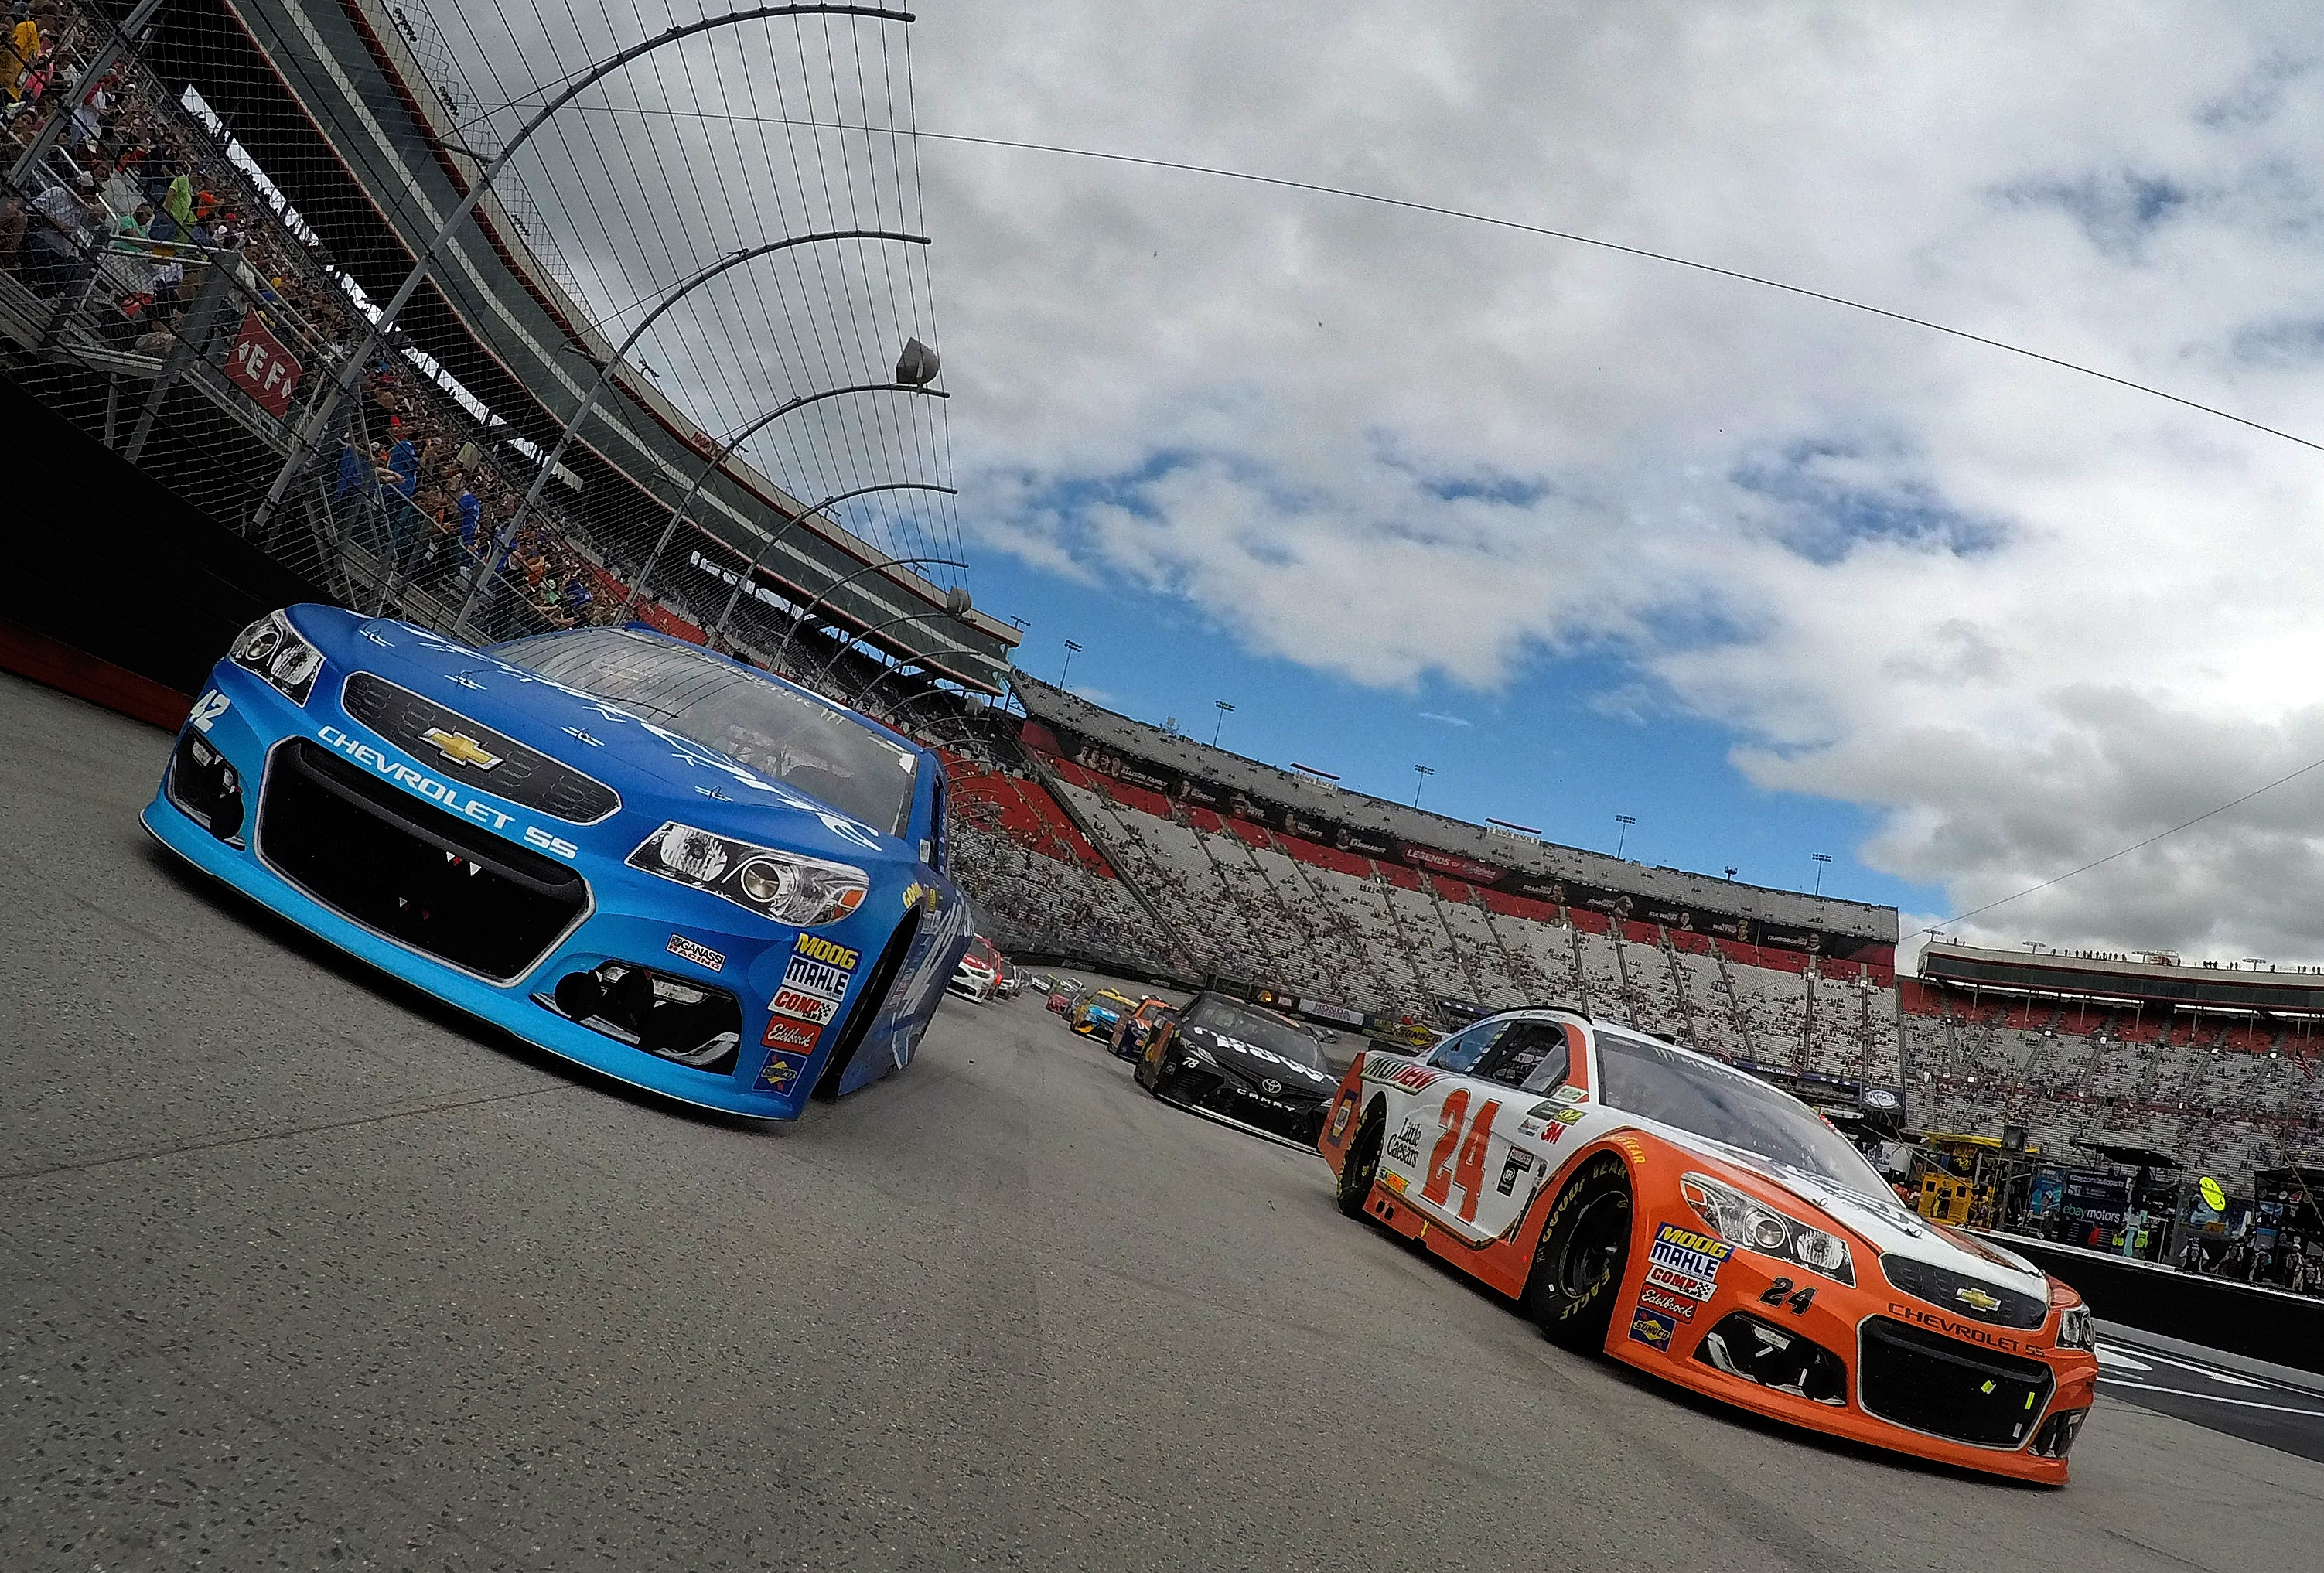 Nascar Competition Cautions Should They Stay Or Should They Go